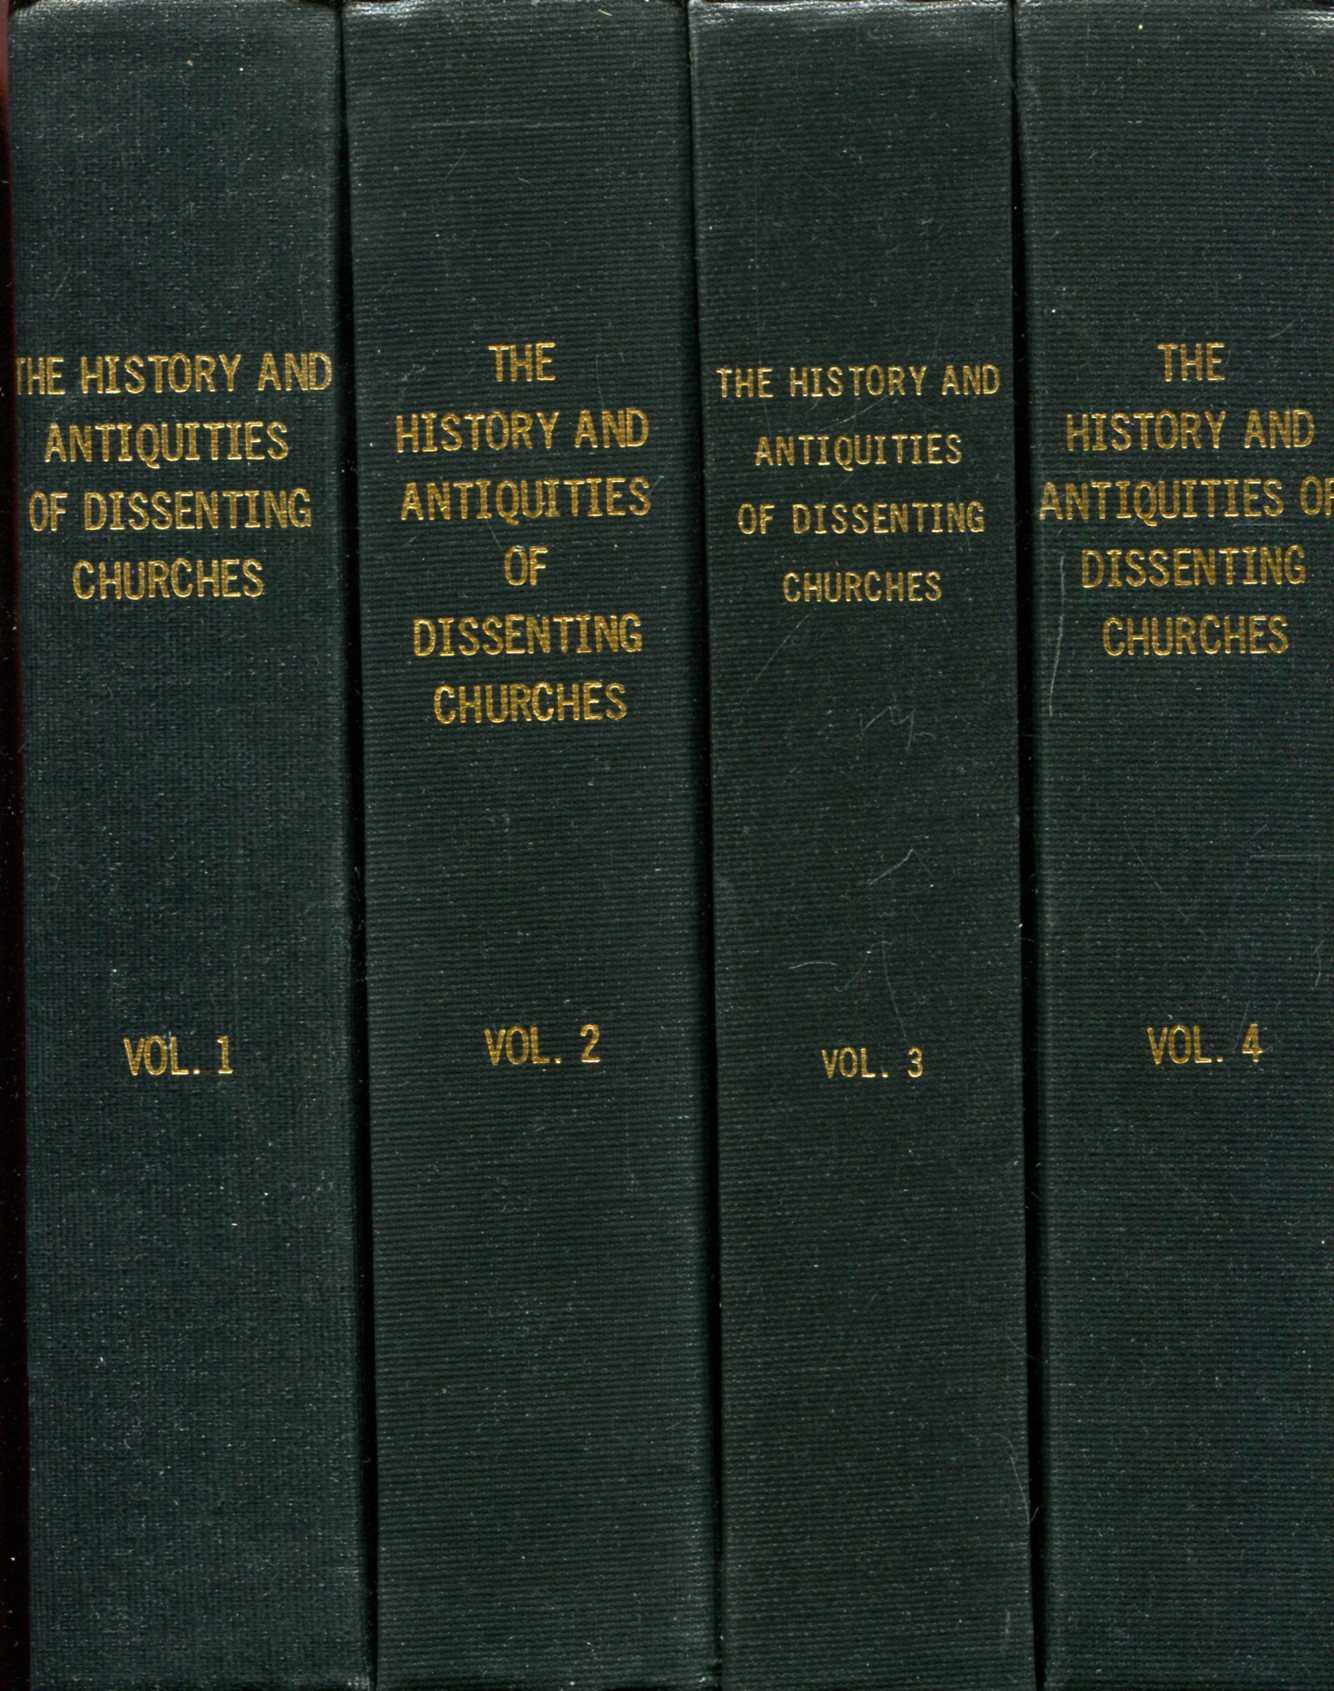 Image for The History and Antiquities of Dissenting Churches and Meeting Houses in London, Westminster and Southwark, including the Lives of their ministers (four volumes complete)